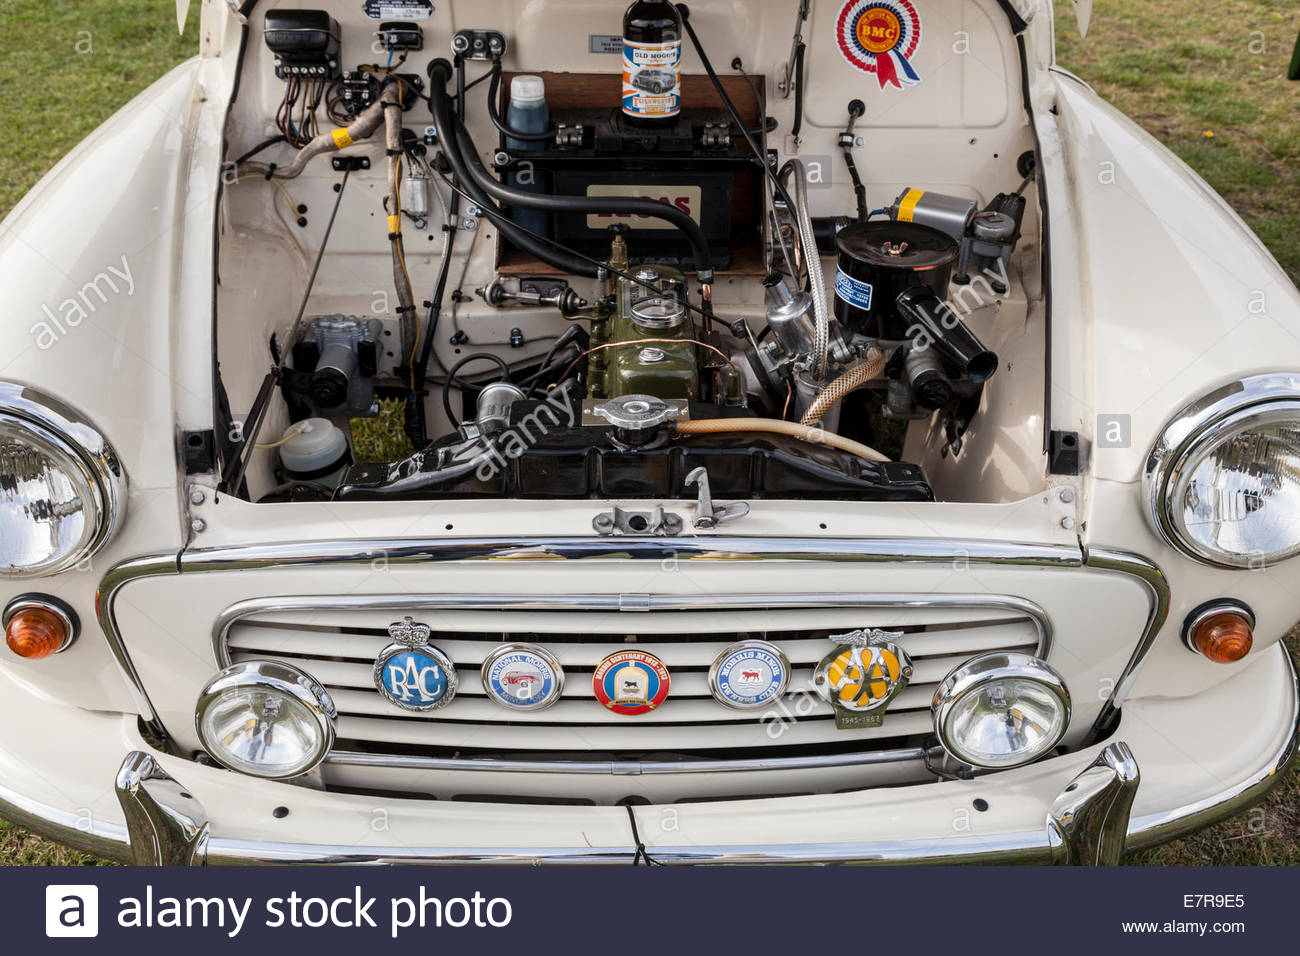 Engine bay of Morris Minor car - manufacture date 1960 Stock Photo